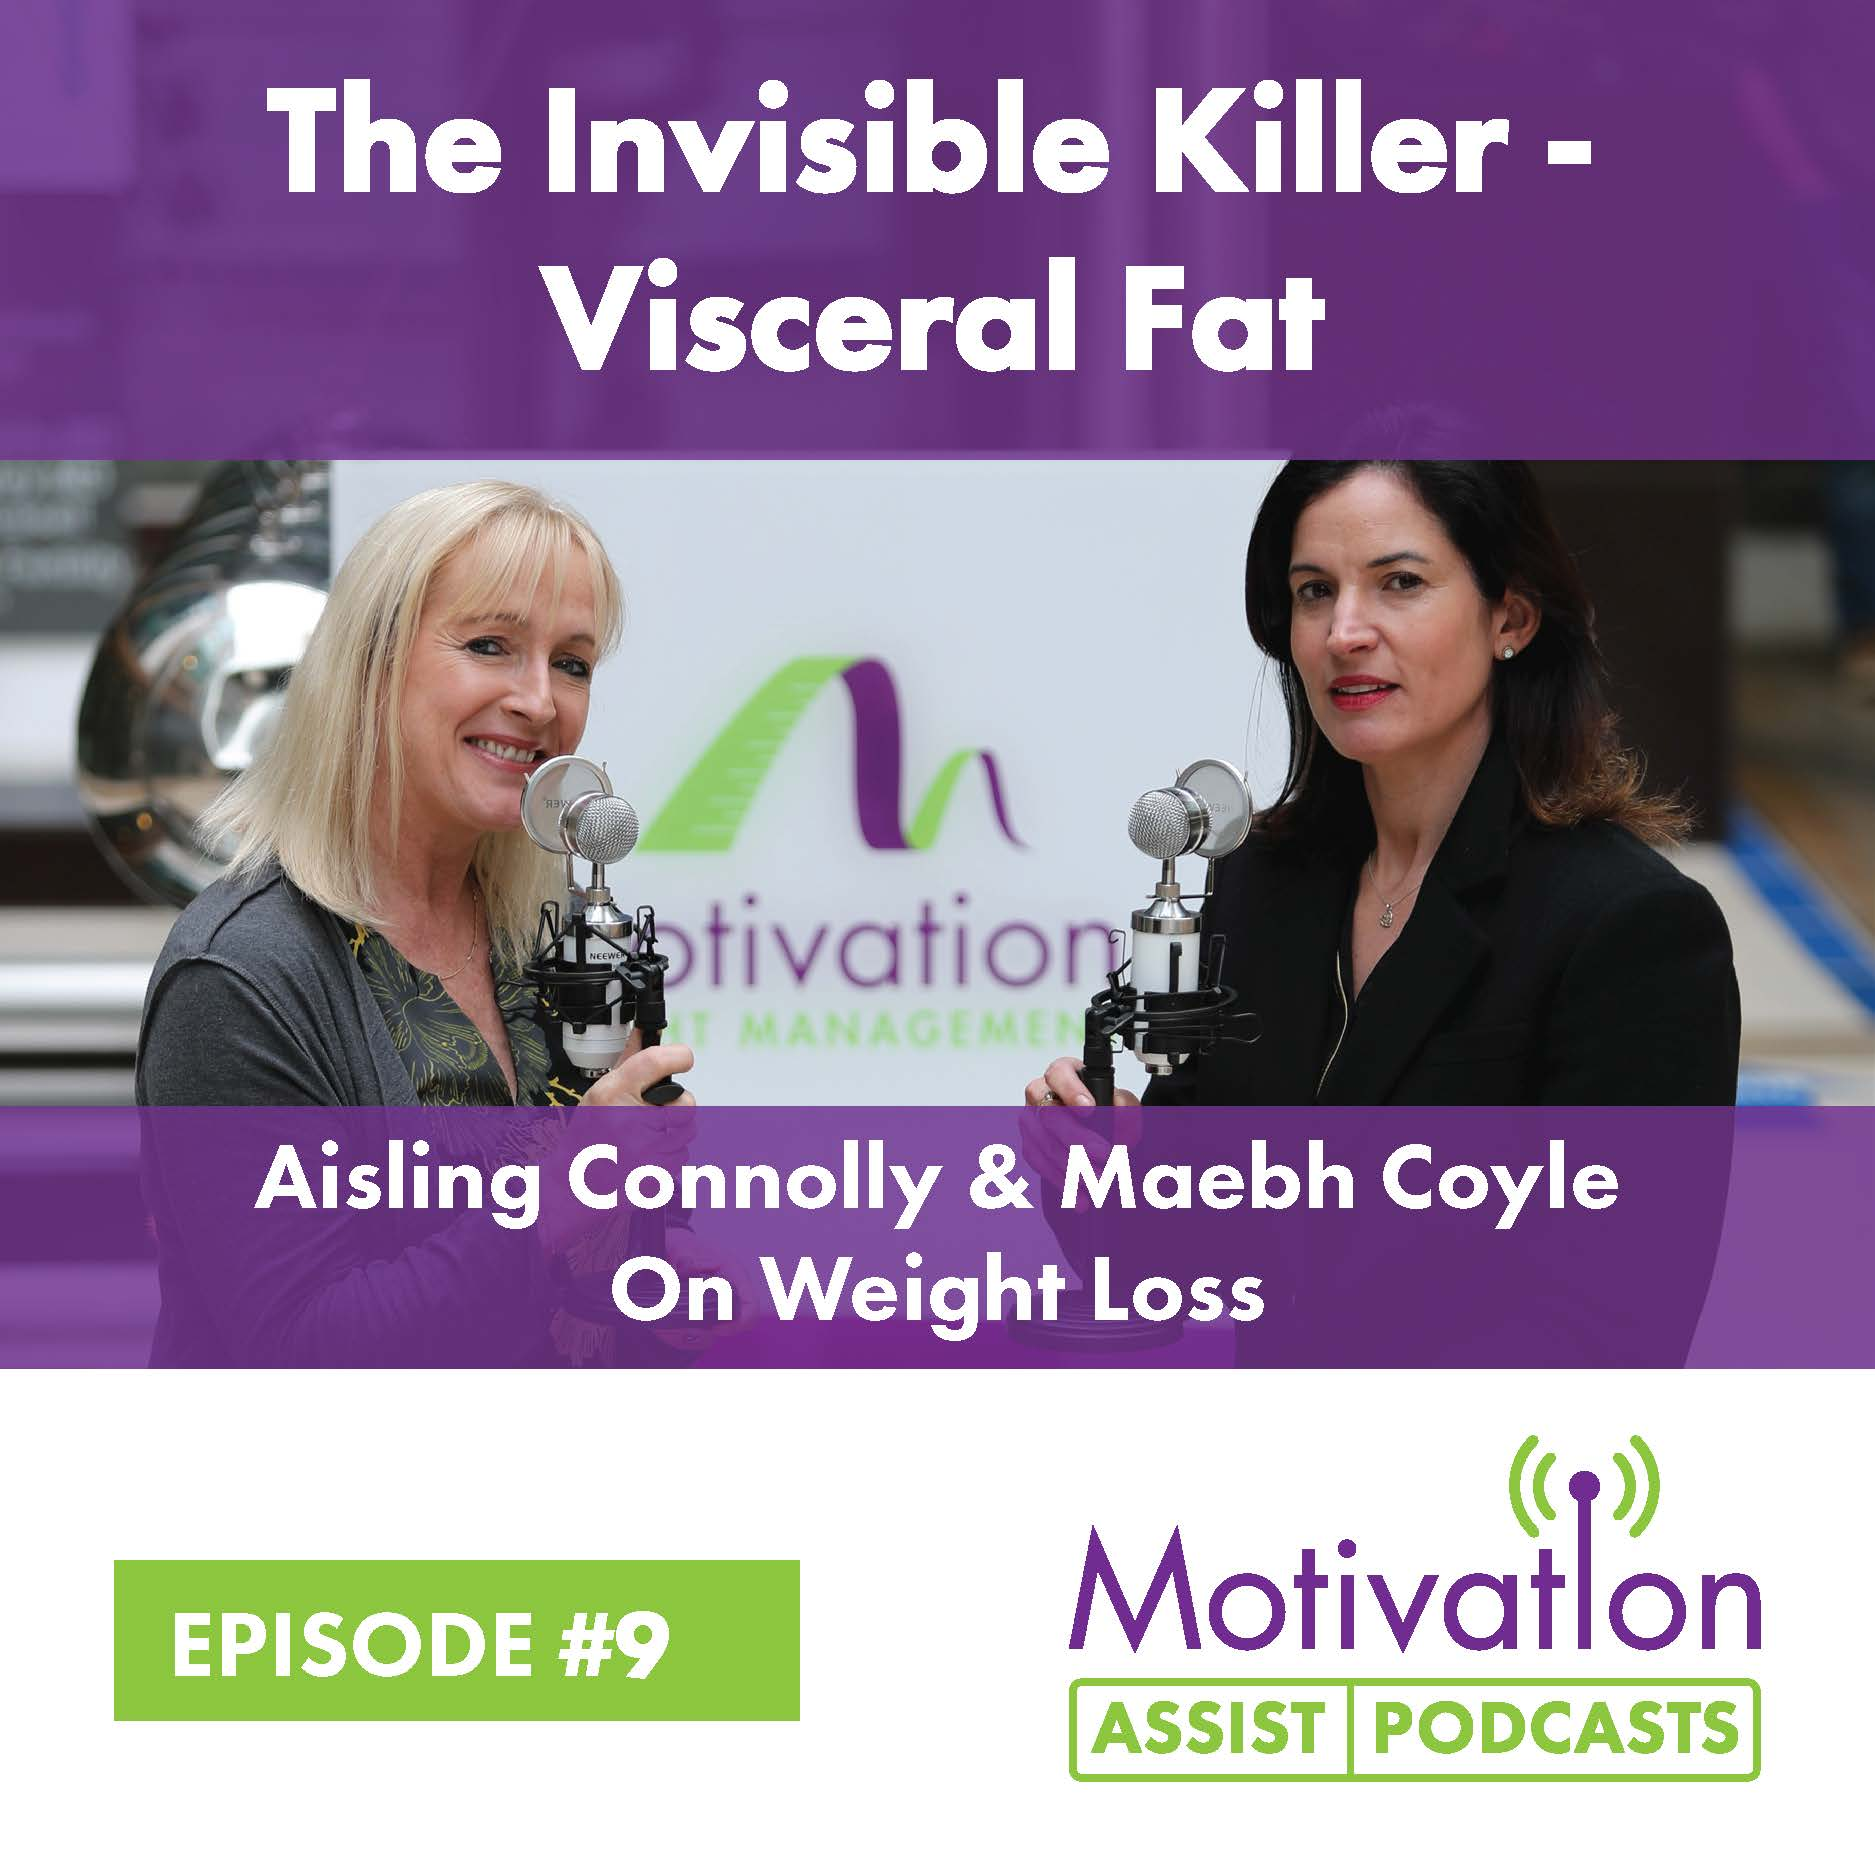 The Invisible Killer Visceral Fat